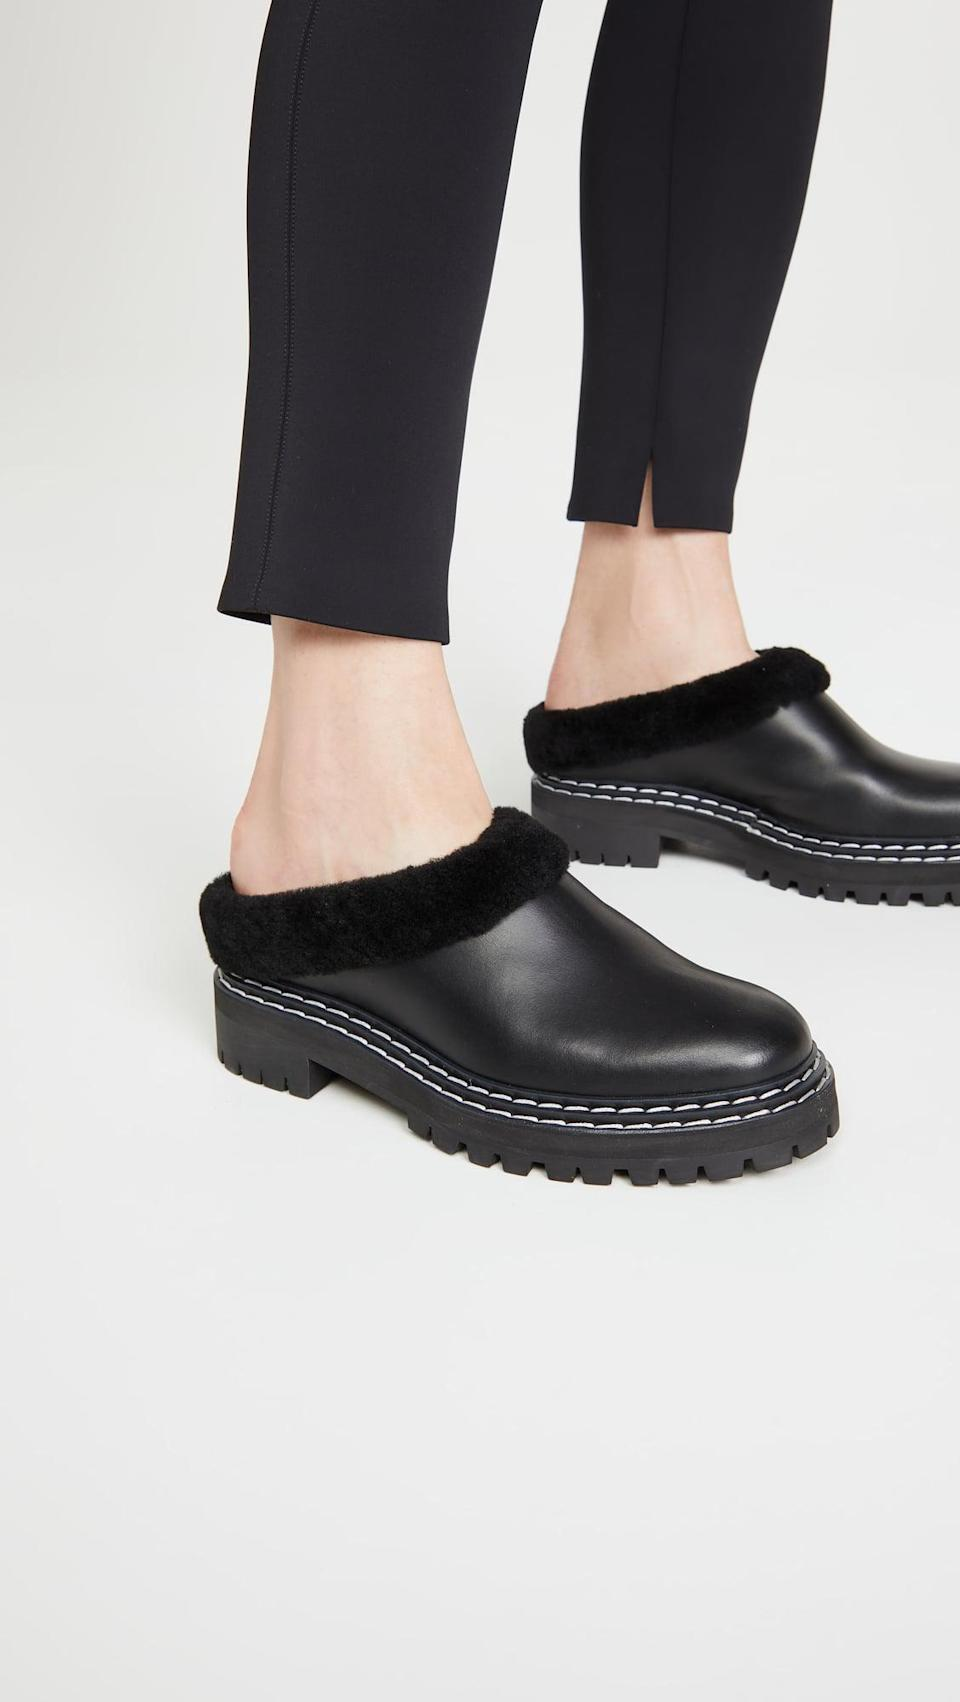 <p>No doubt these cool <span>Proenza Schouler Lug Sole Mules</span> ($740) will keep your feet warm. The leather makes them a durable choice too.</p>